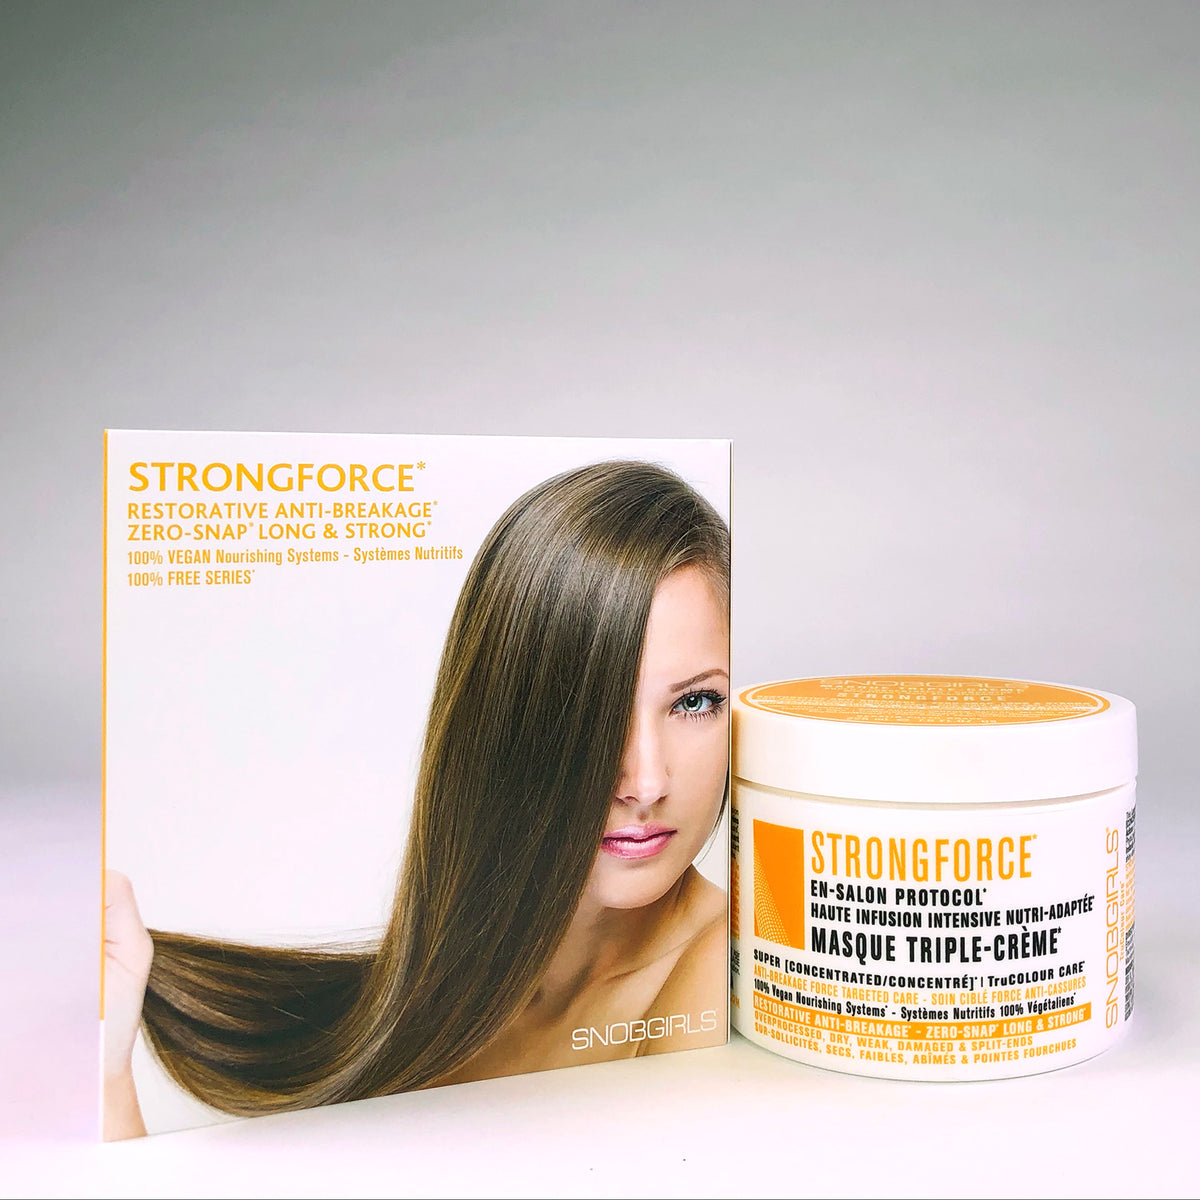 STRONGFORCE Restorative Anti-Breakage Triple-Creme Masque - SNOBGIRLS.com